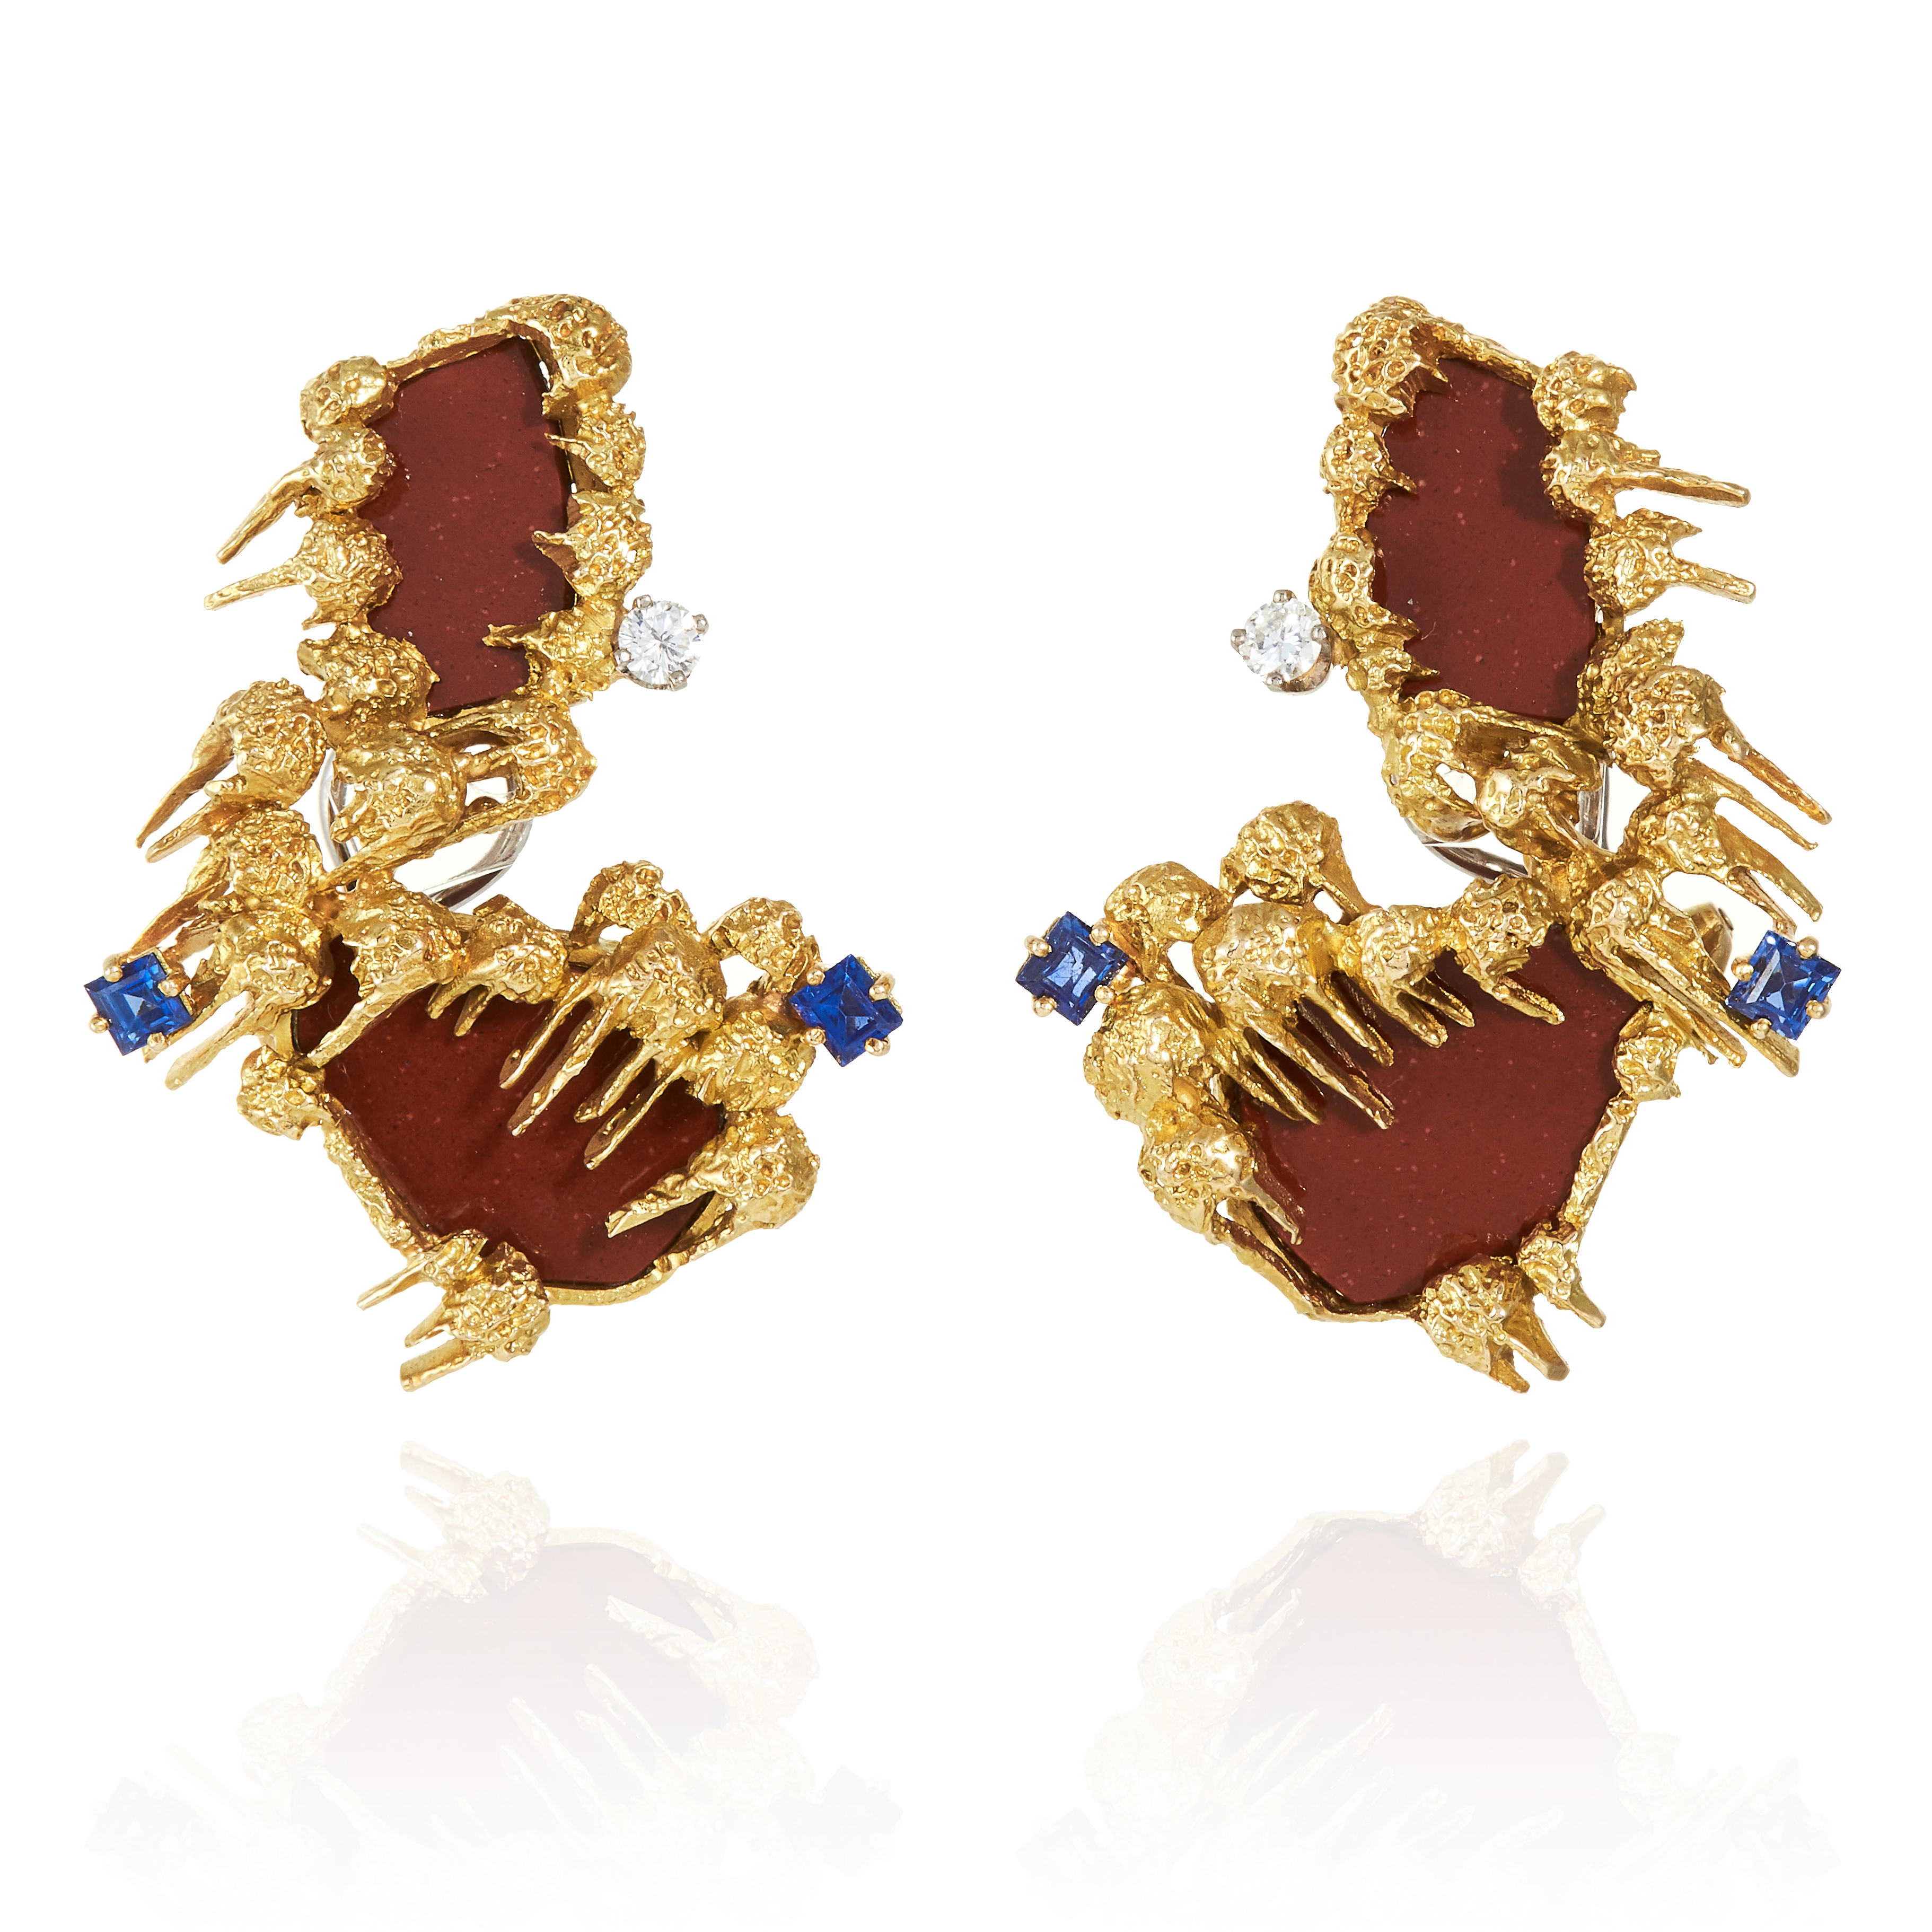 Los 58 - A PAIR OF SAPPHIRE, DIAMOND AND AGATE EARRINGS, GUBELIN, CIRCA 1970 in 18ct yellow gold, designed in